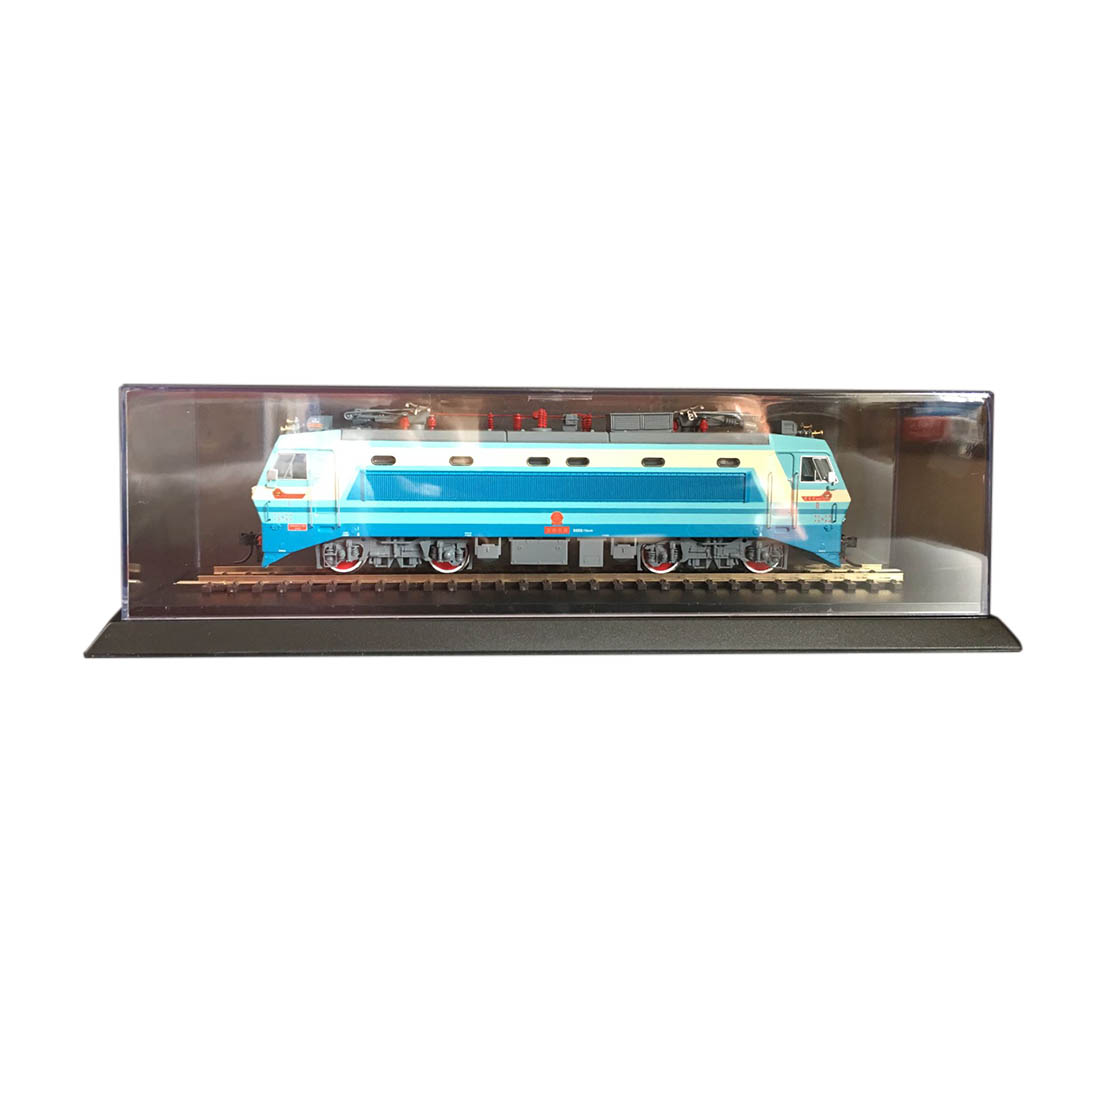 25.7 X 6.6 X 6cm HO Scale Model Train Display Case Showcase With 55201 Old Orbitals (Excluding Train) Educational Toy For Kid